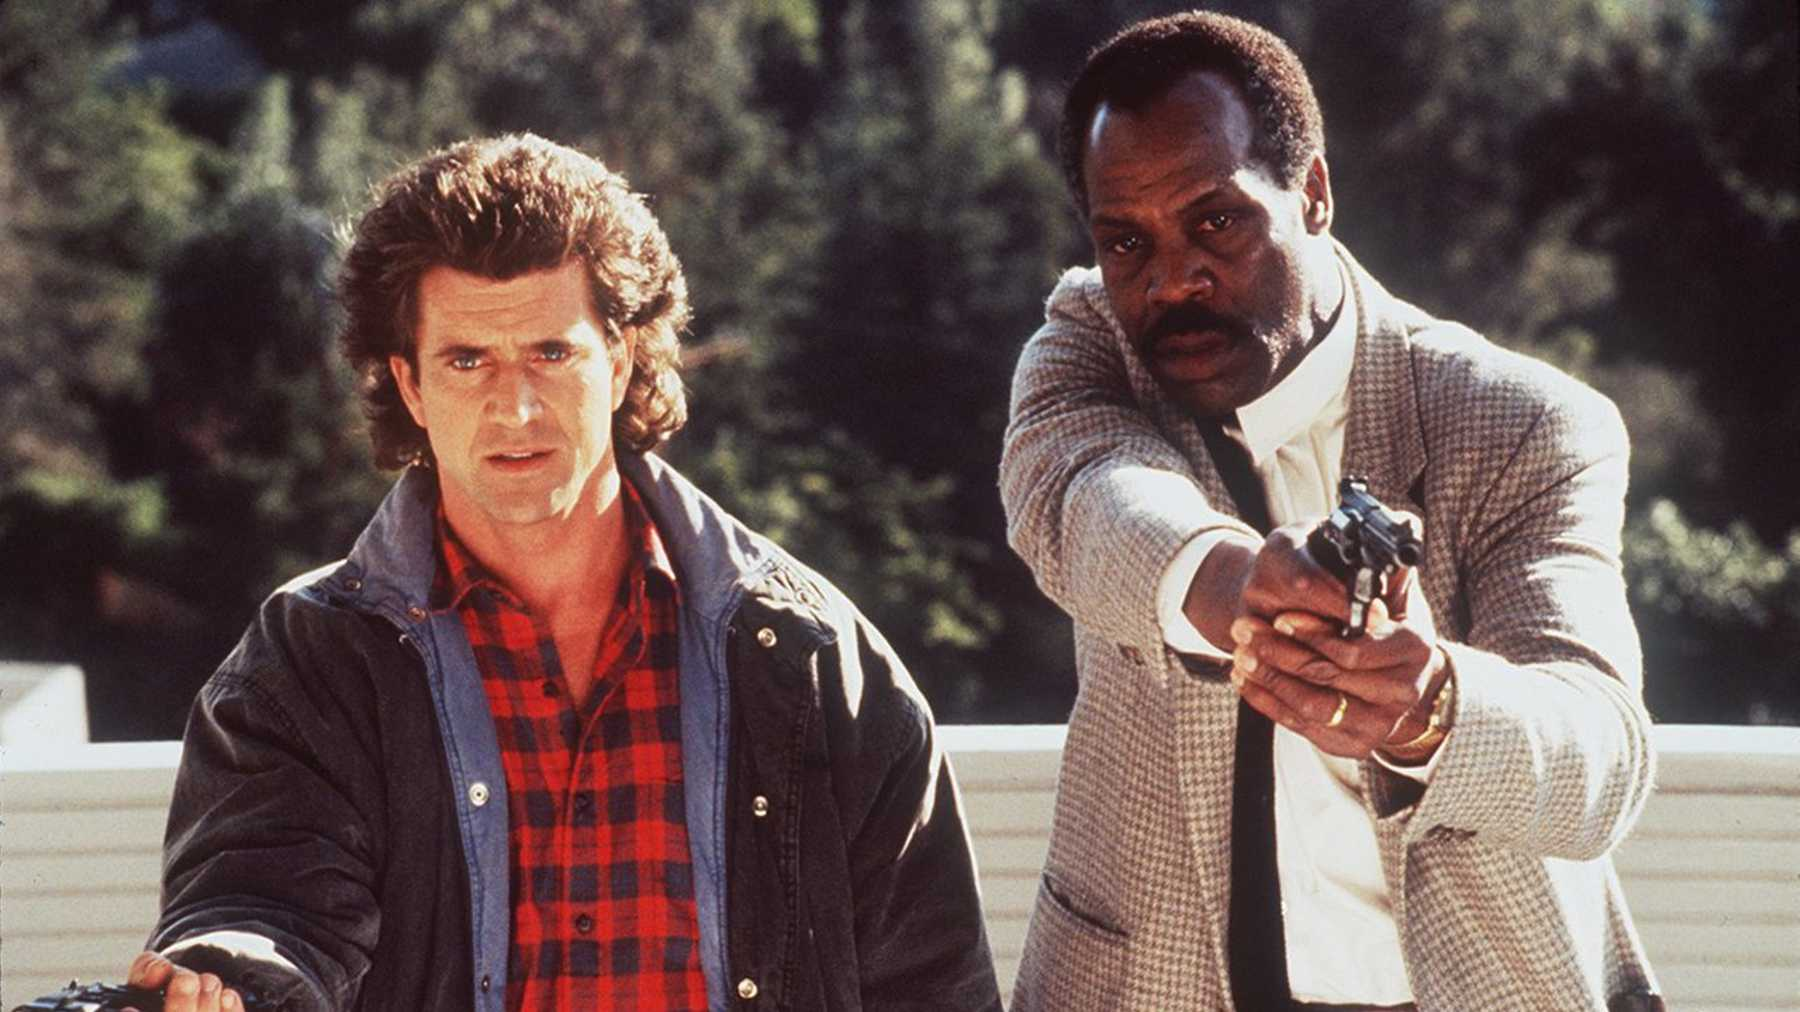 Summer of '89: Lethal Weapon 2